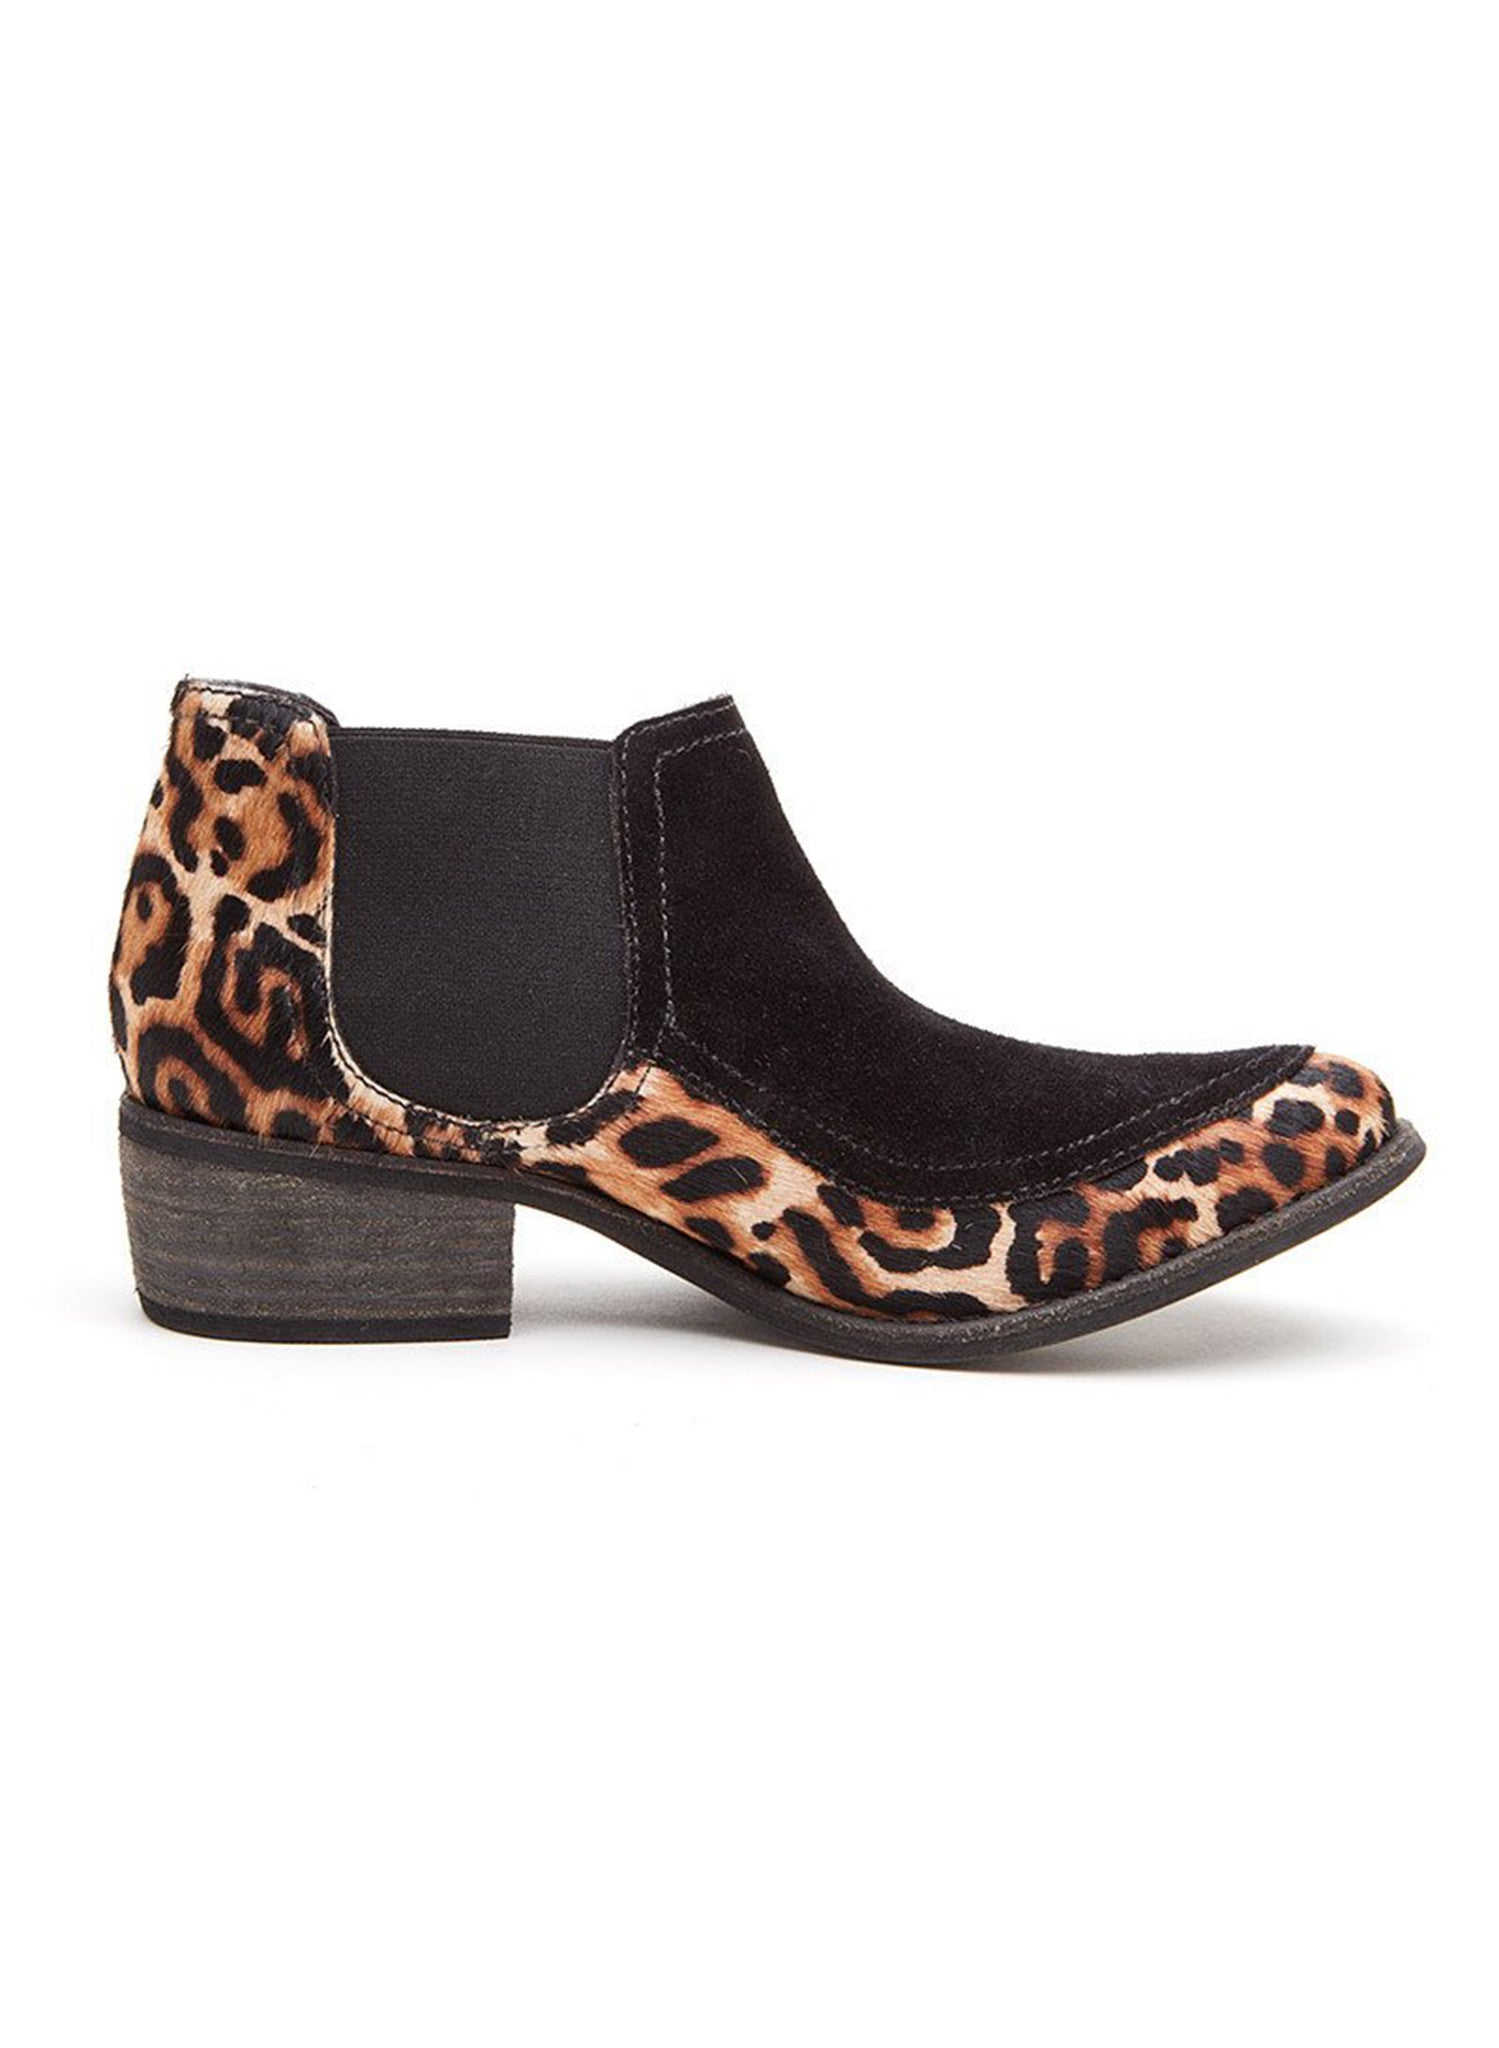 Matisse Ultra Gored Cow Hair Bootie in Black / Leopard Cowhair